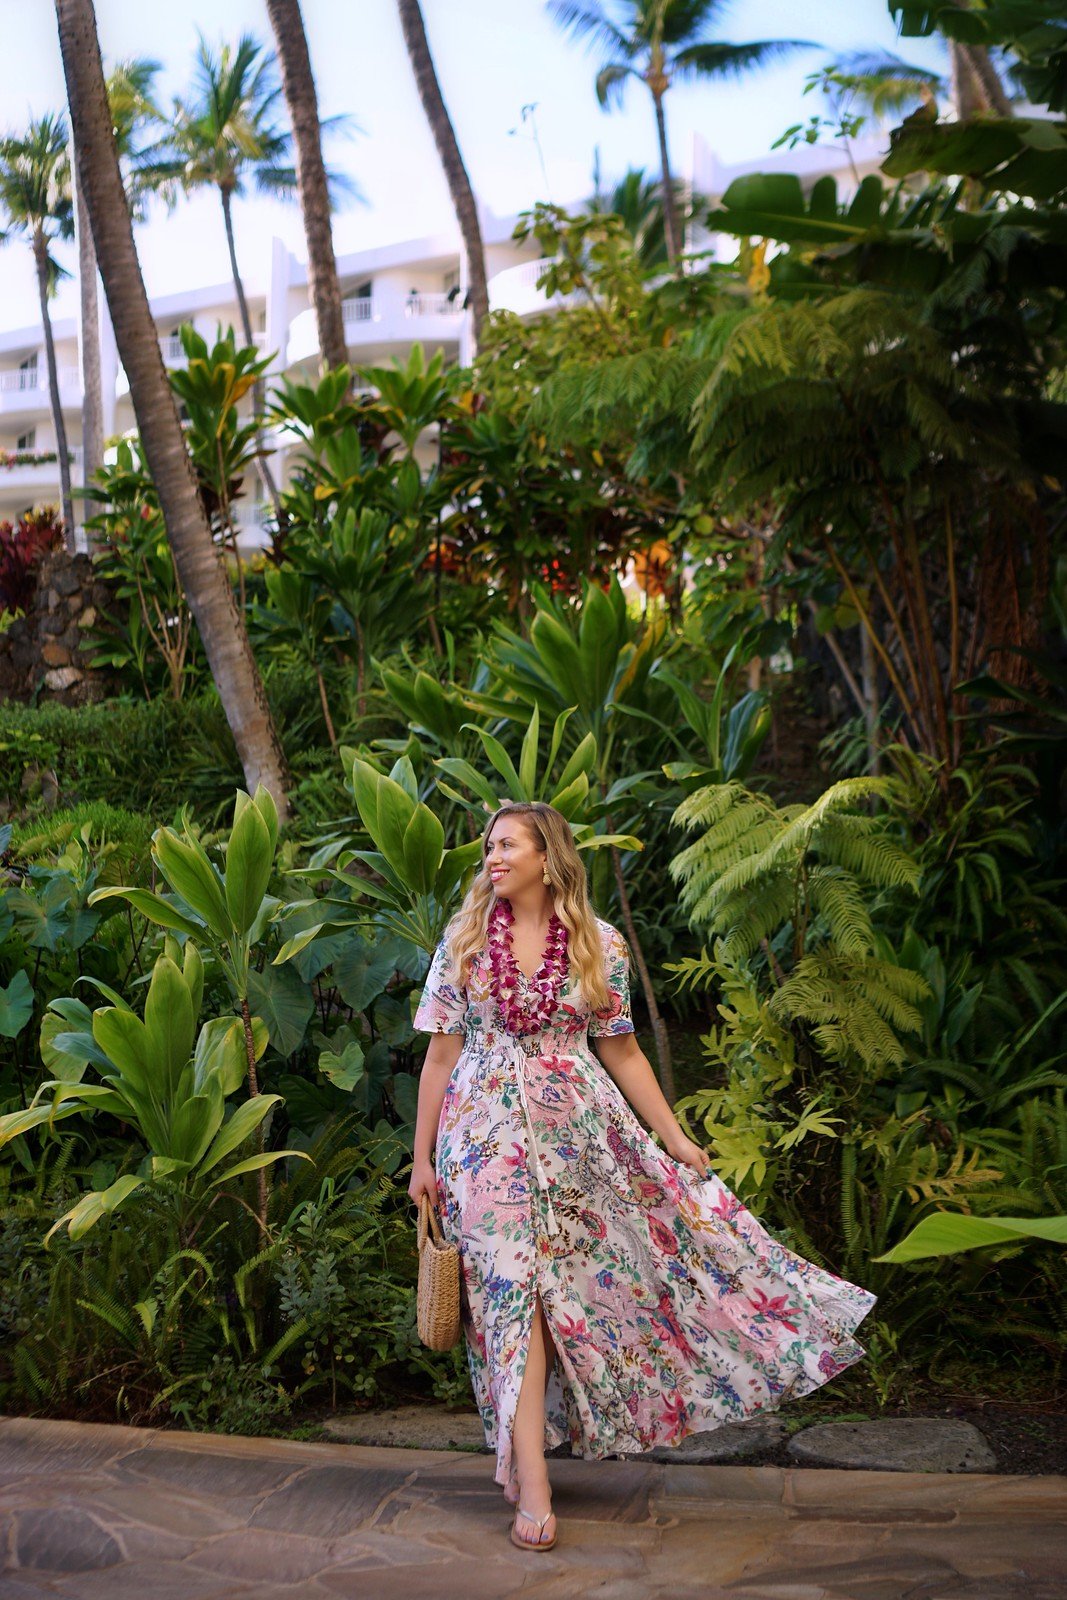 Hawaii Outfit Inspiration Shein Floral Maxi Dress Rattan Bag Fairmont Kea Lani Maui Hawaii